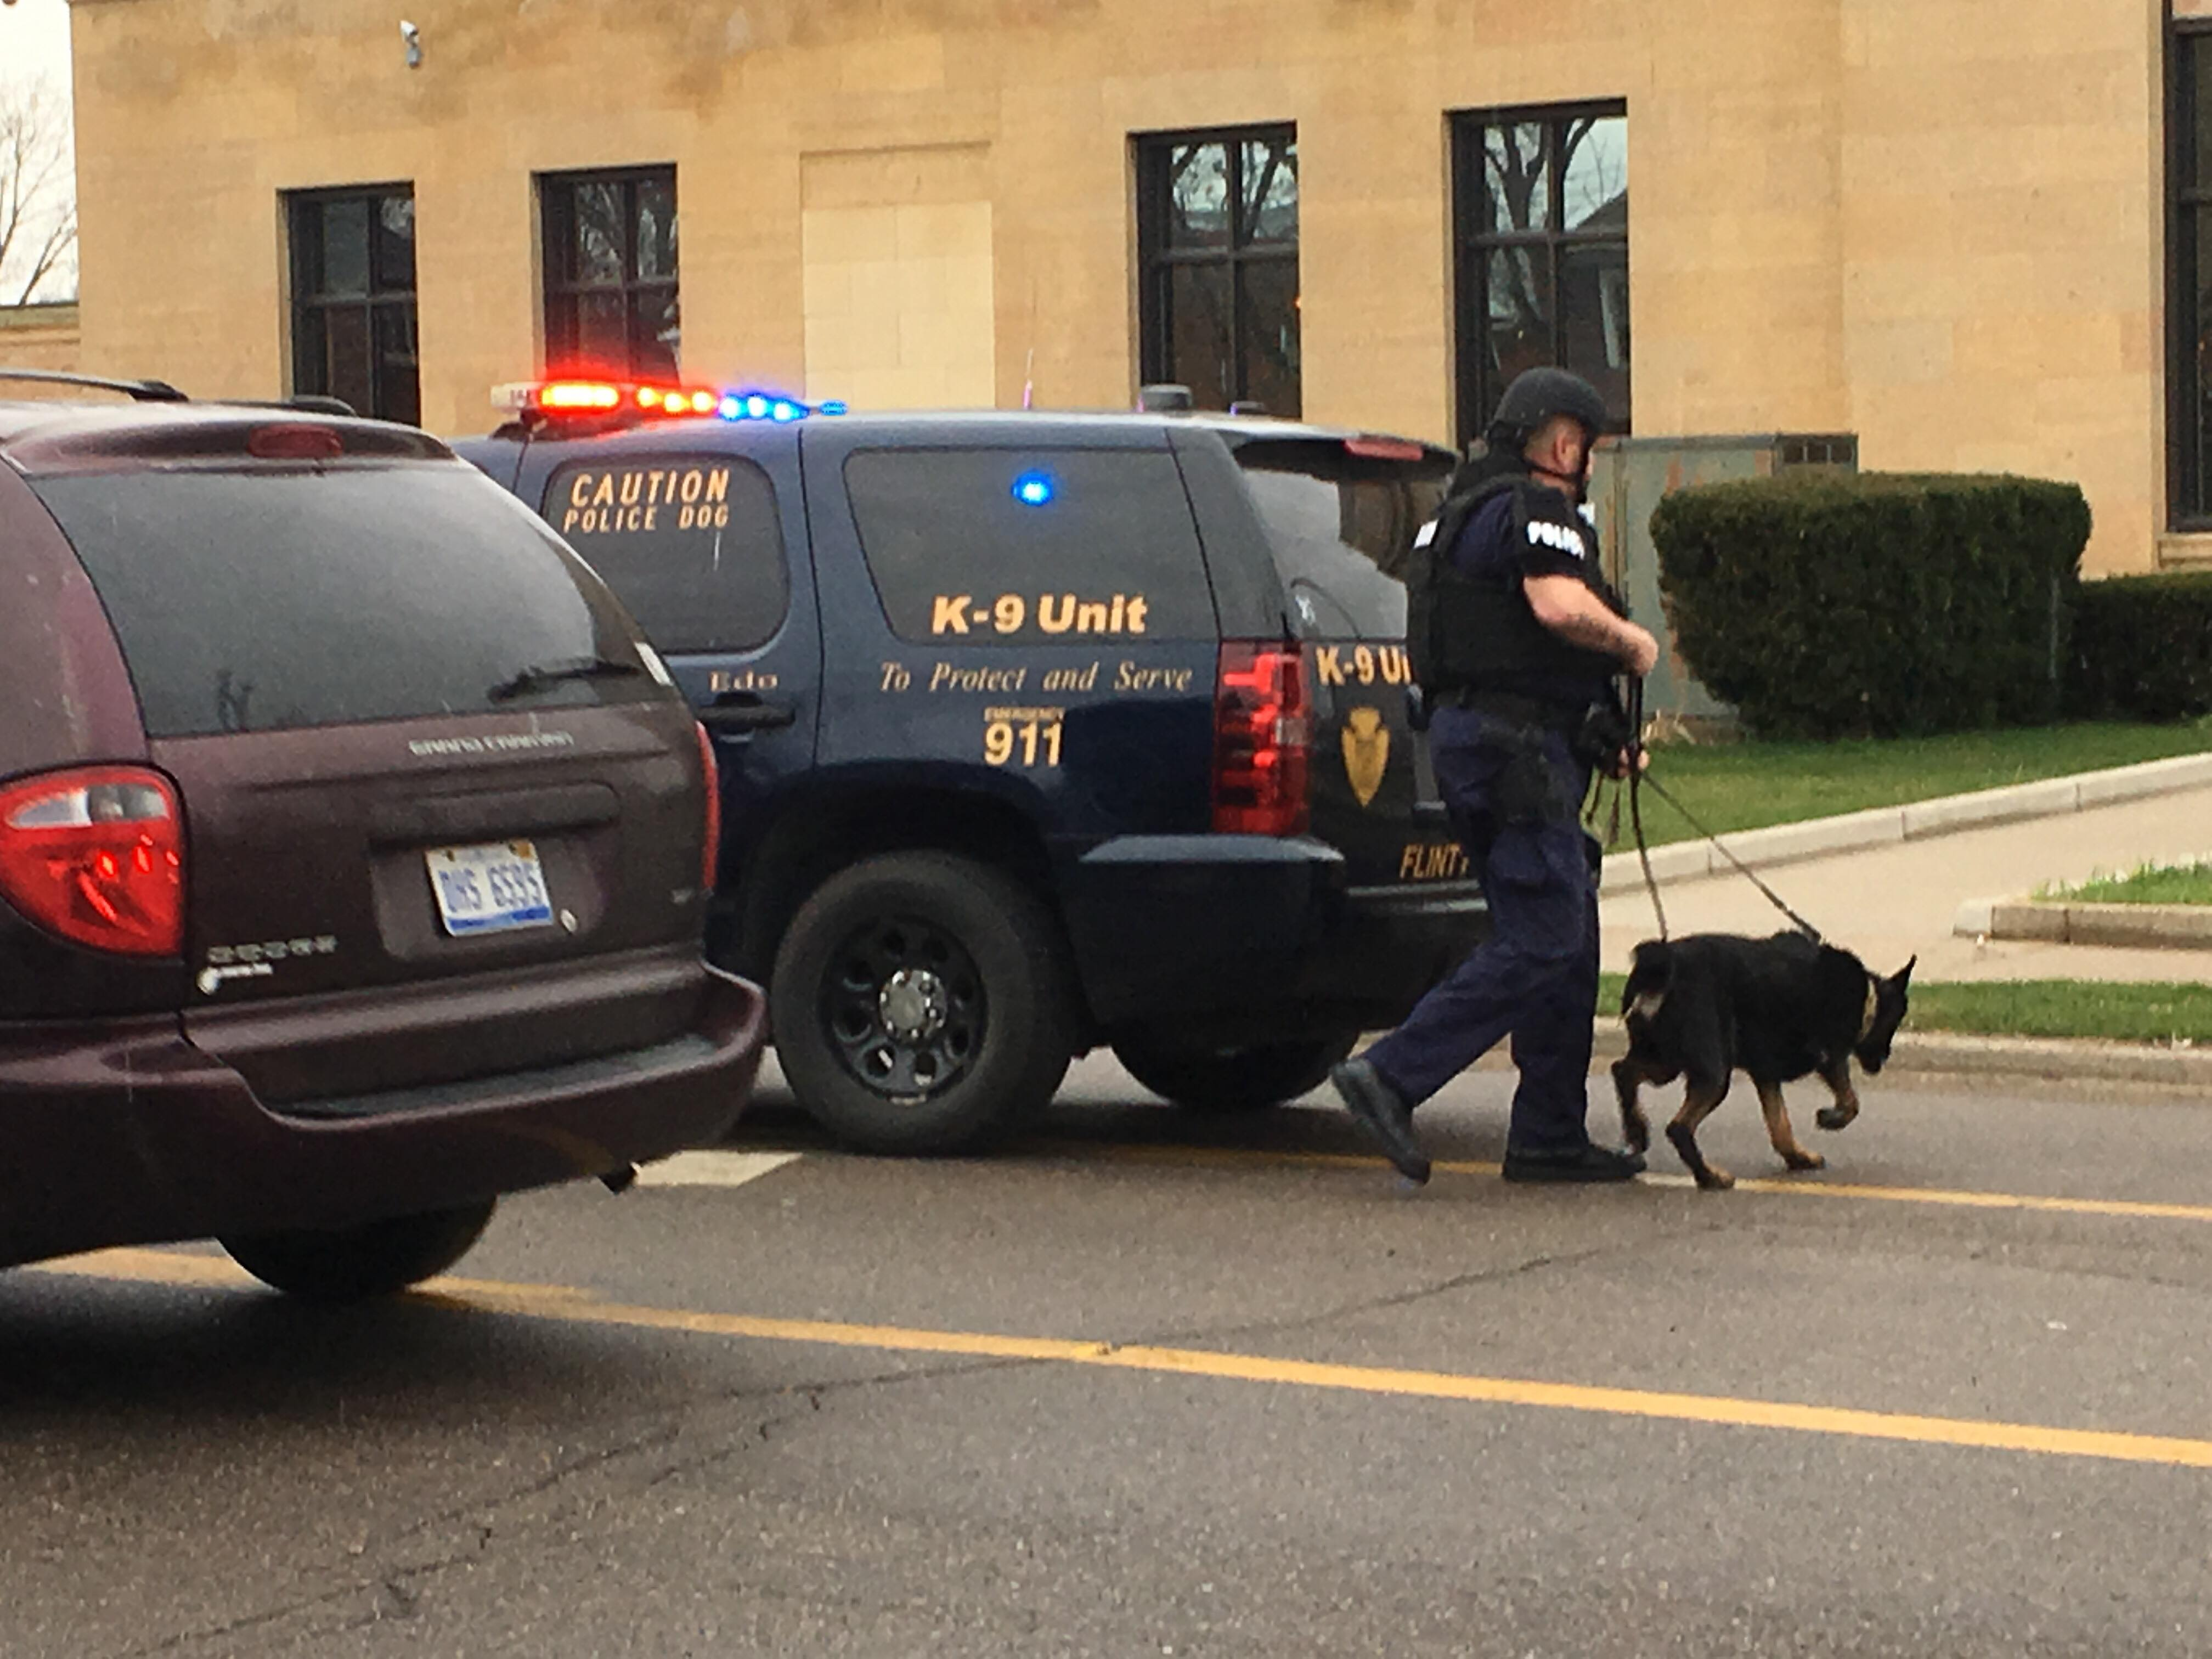 A suspicious package was found at the Federal Building in Flint. (Photo Credit: Courtney Wheaton){ }